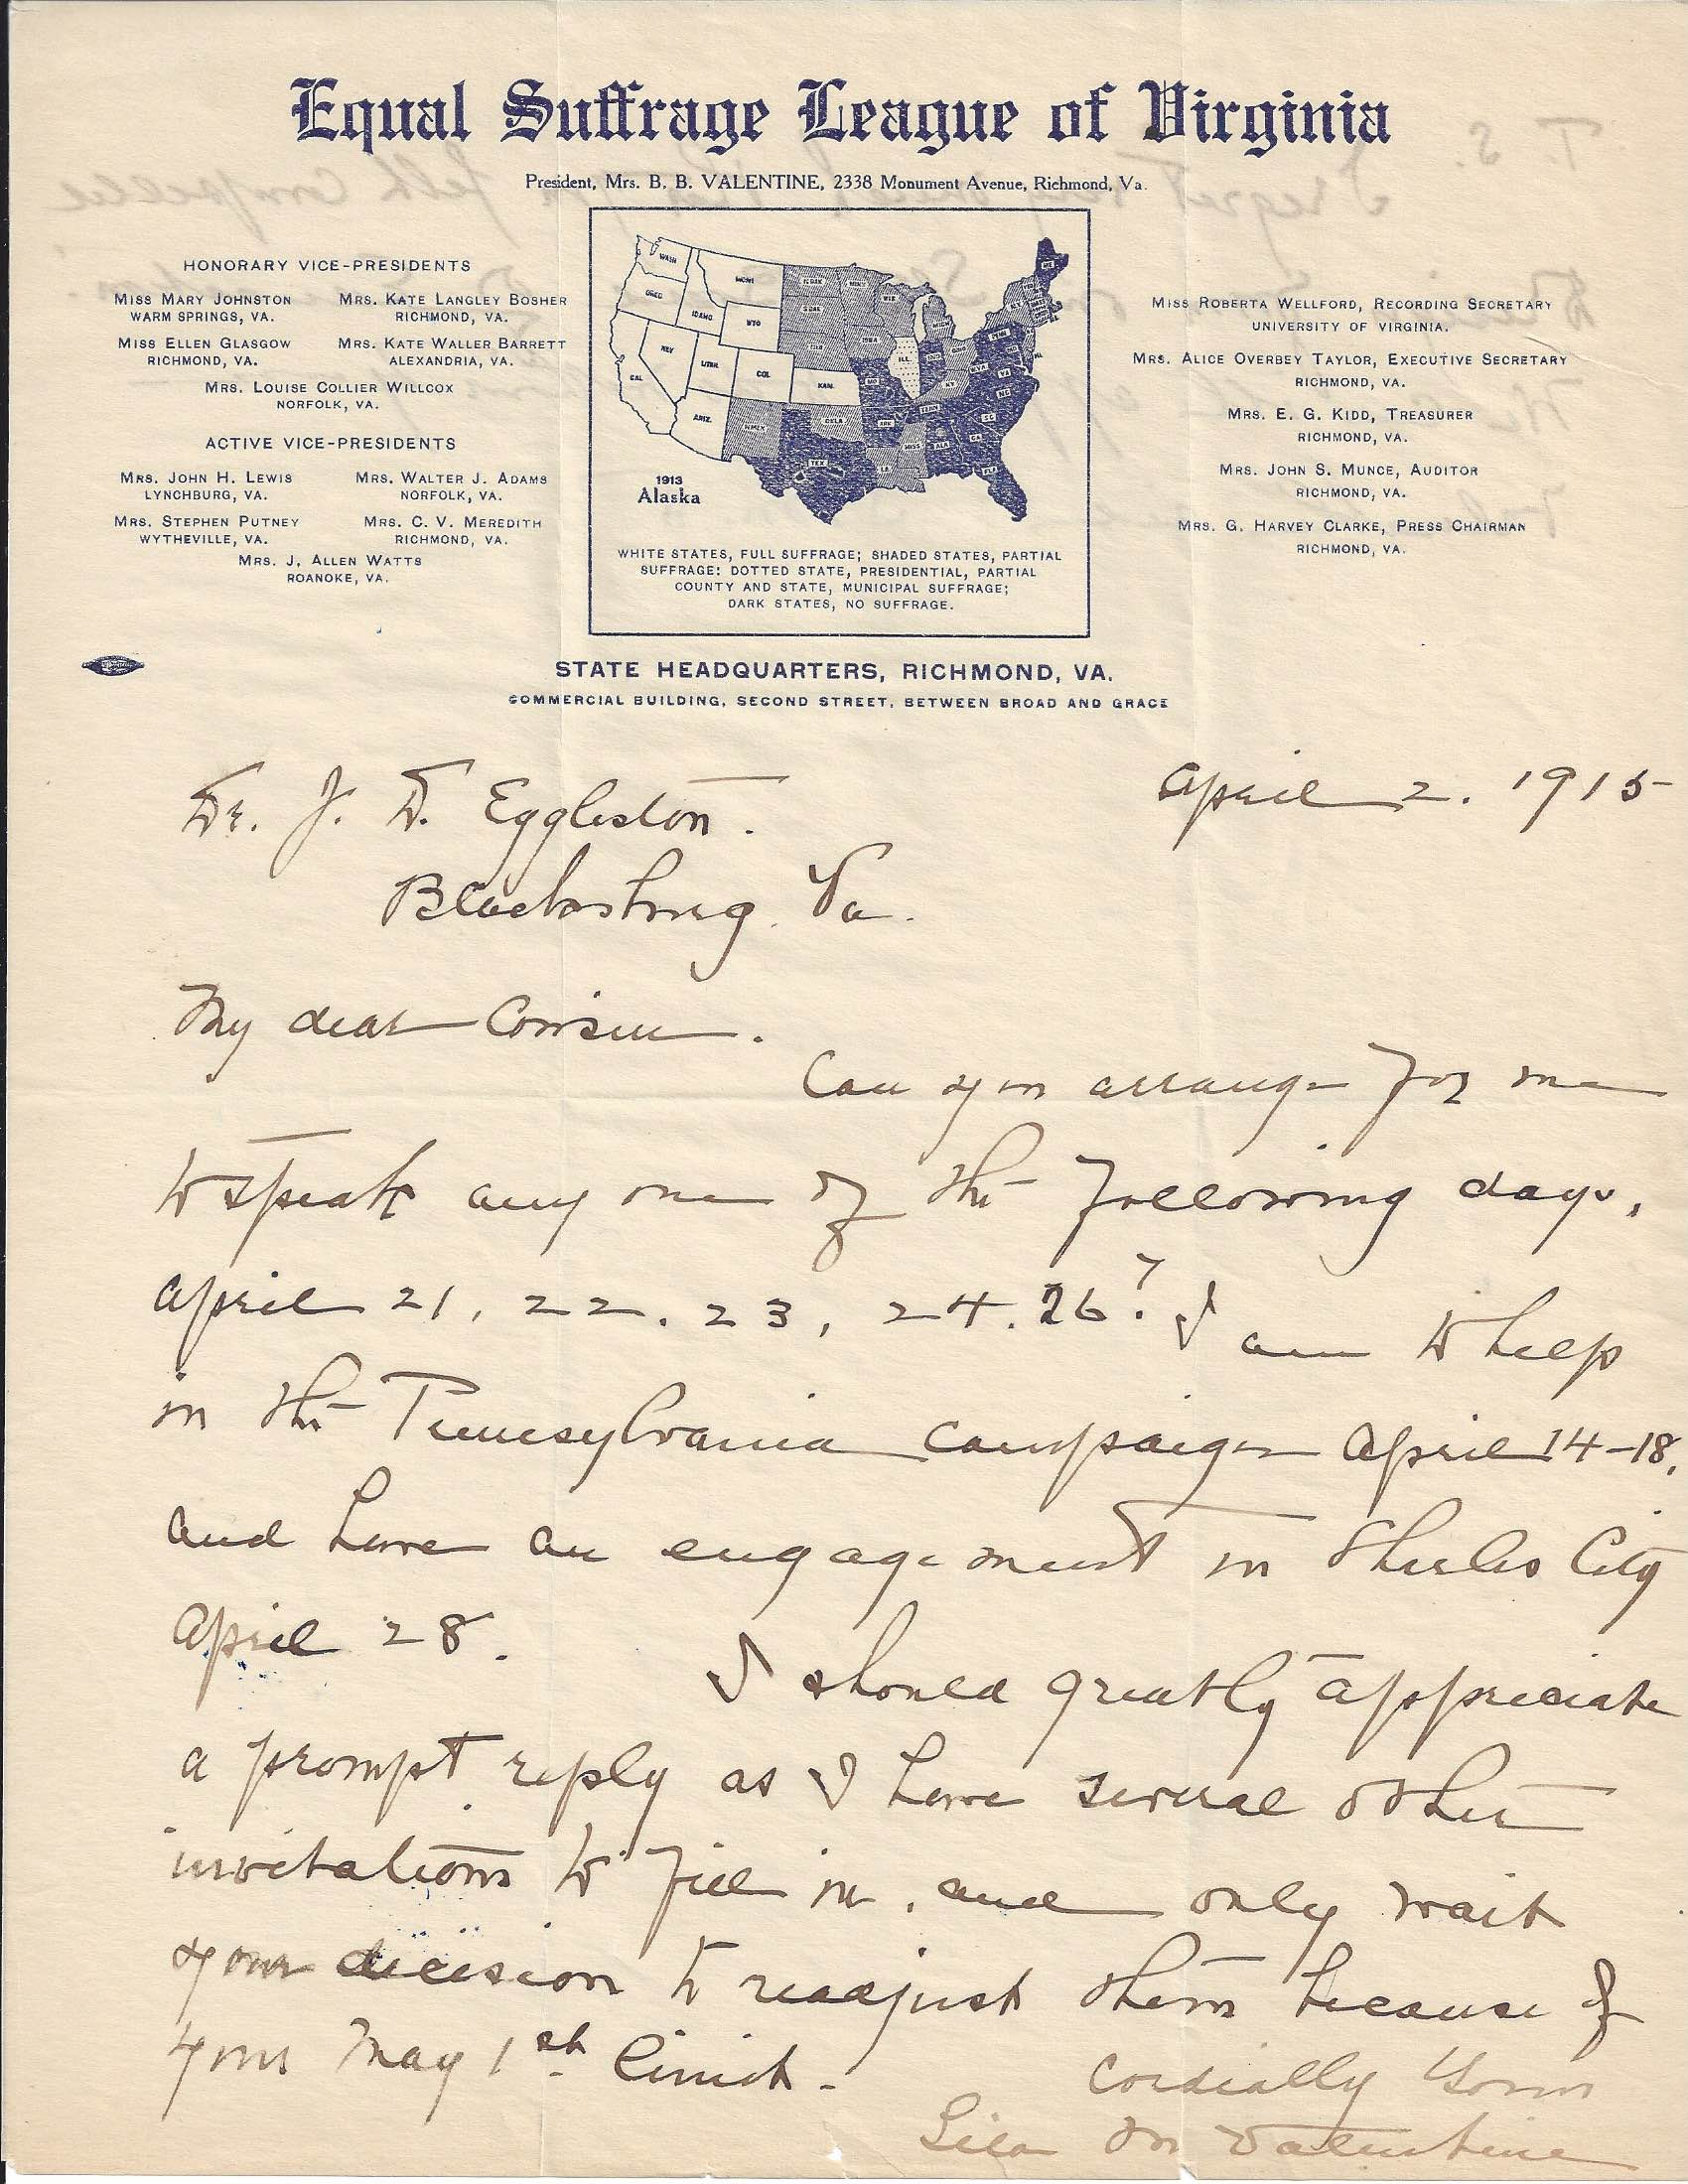 Page one of a 1915 letter from Lila Meade Valentine to J. D. Eggleston. The letter is on Equal Suffrage League of Virginia stationery.